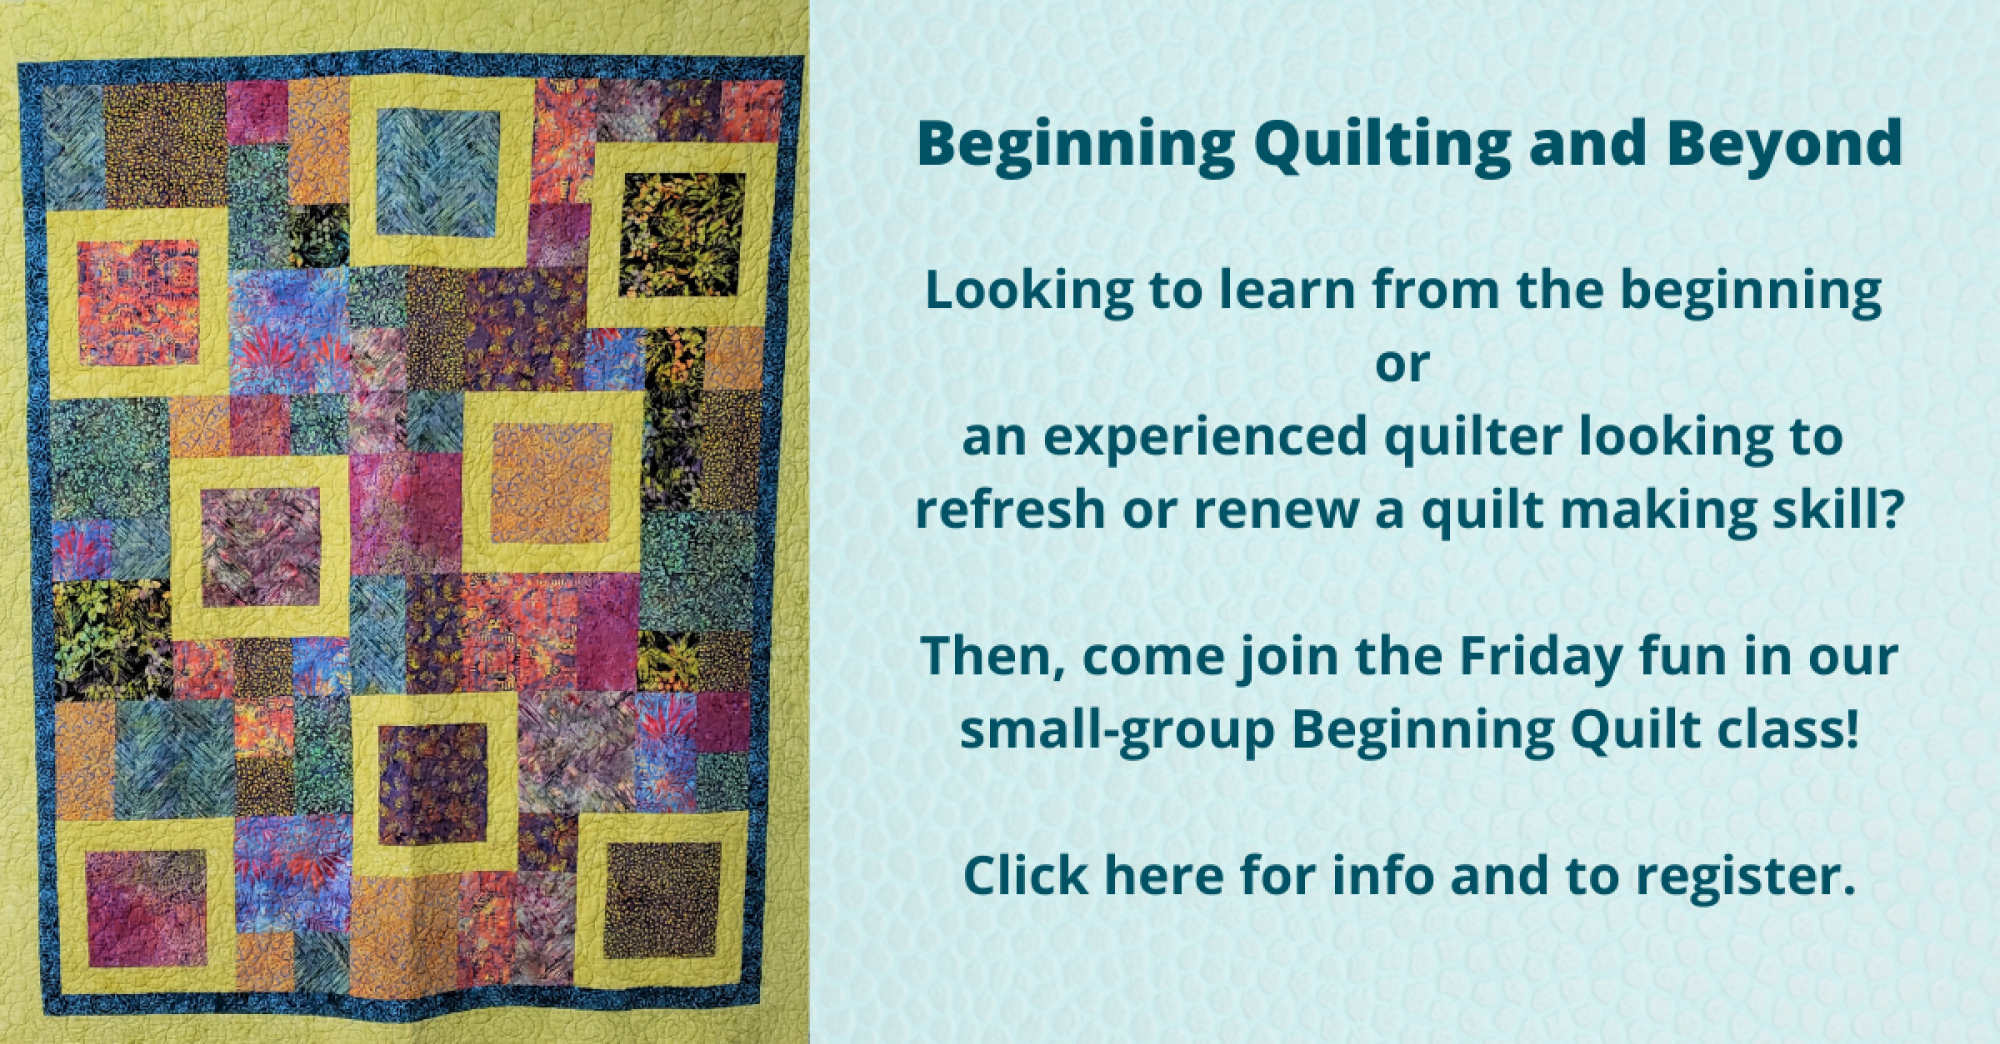 bee's quilt shop beginning quilting class fridays with Steve